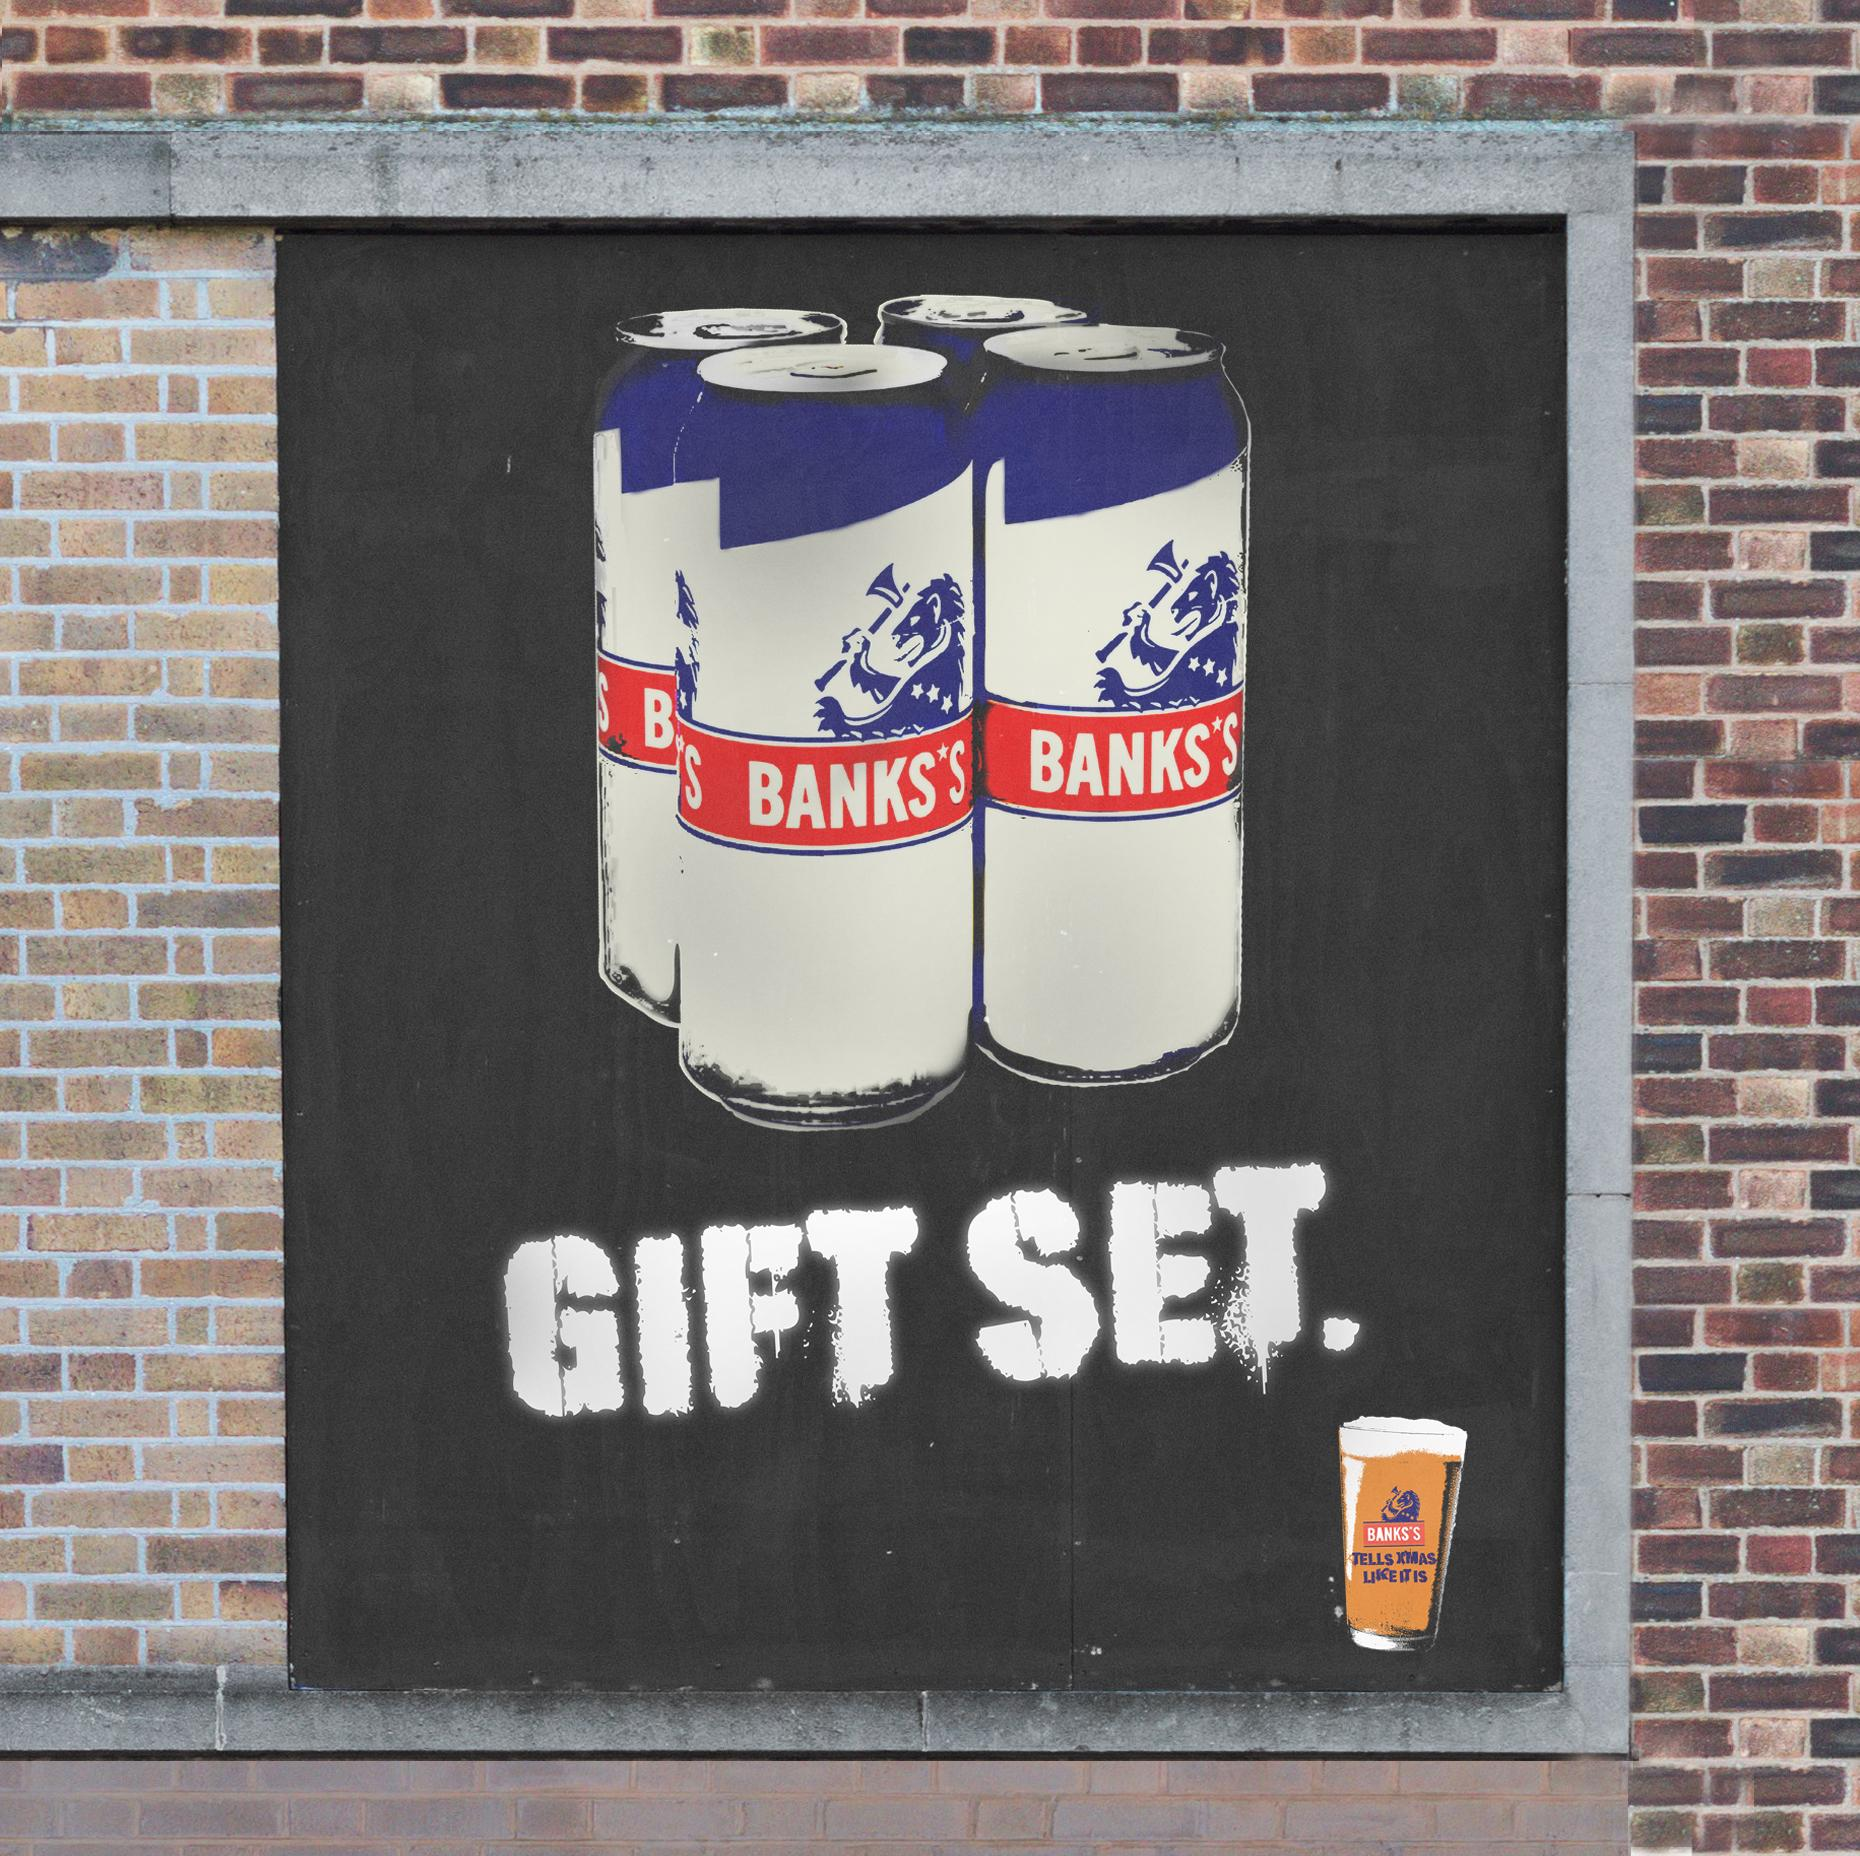 OOH Gift set ad for Banks beer